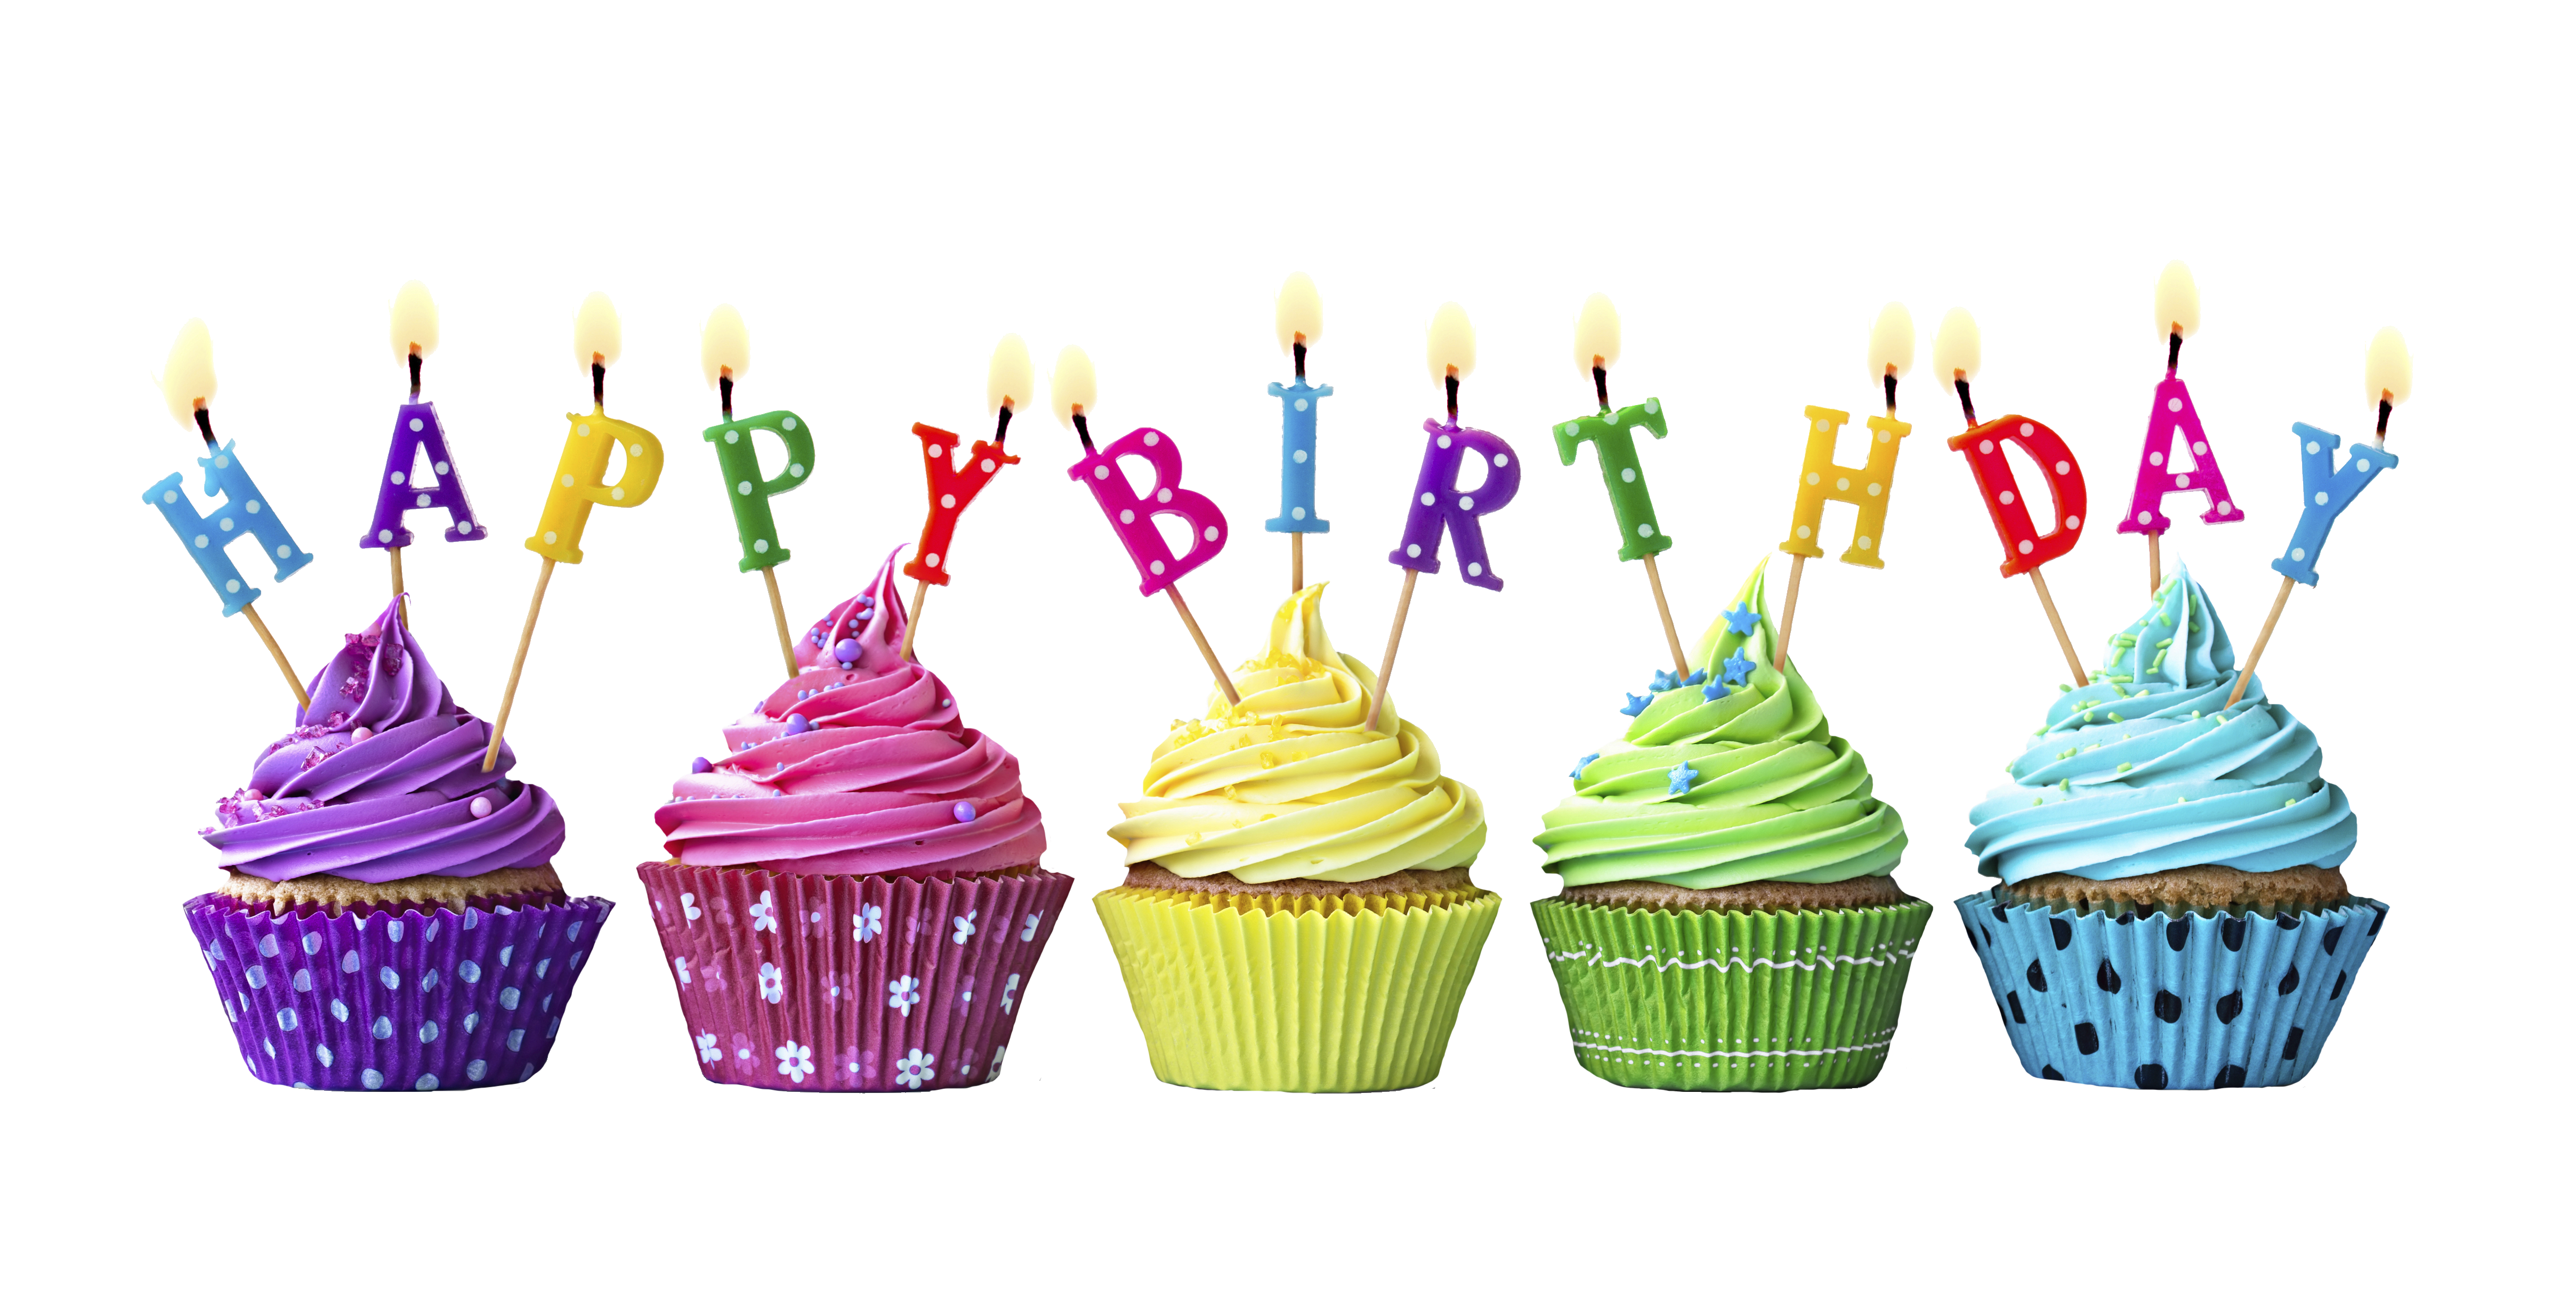 Parties community education happy. Birthday images png vector